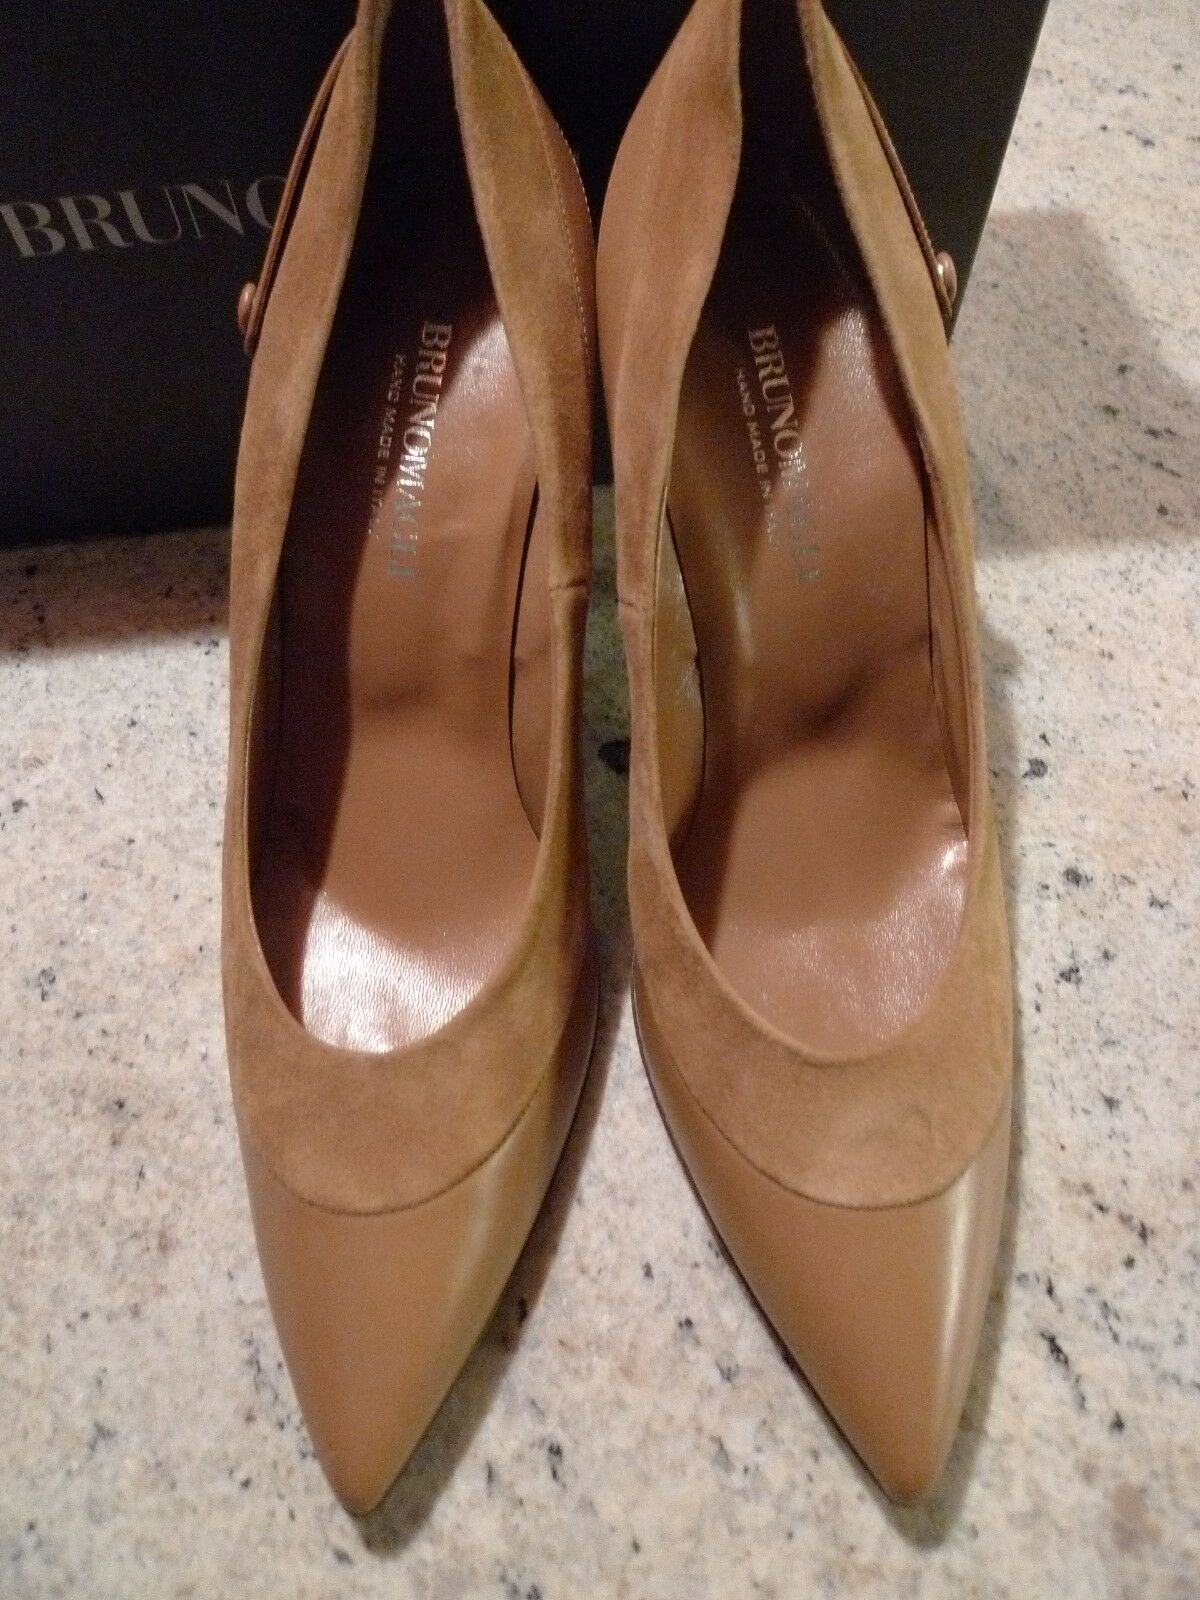 890. BRUNOMAGLI HAND MADE LEATHE/SUEDE TAN COLOR HEEL PUMPS ITALY SIZE 9 1/2